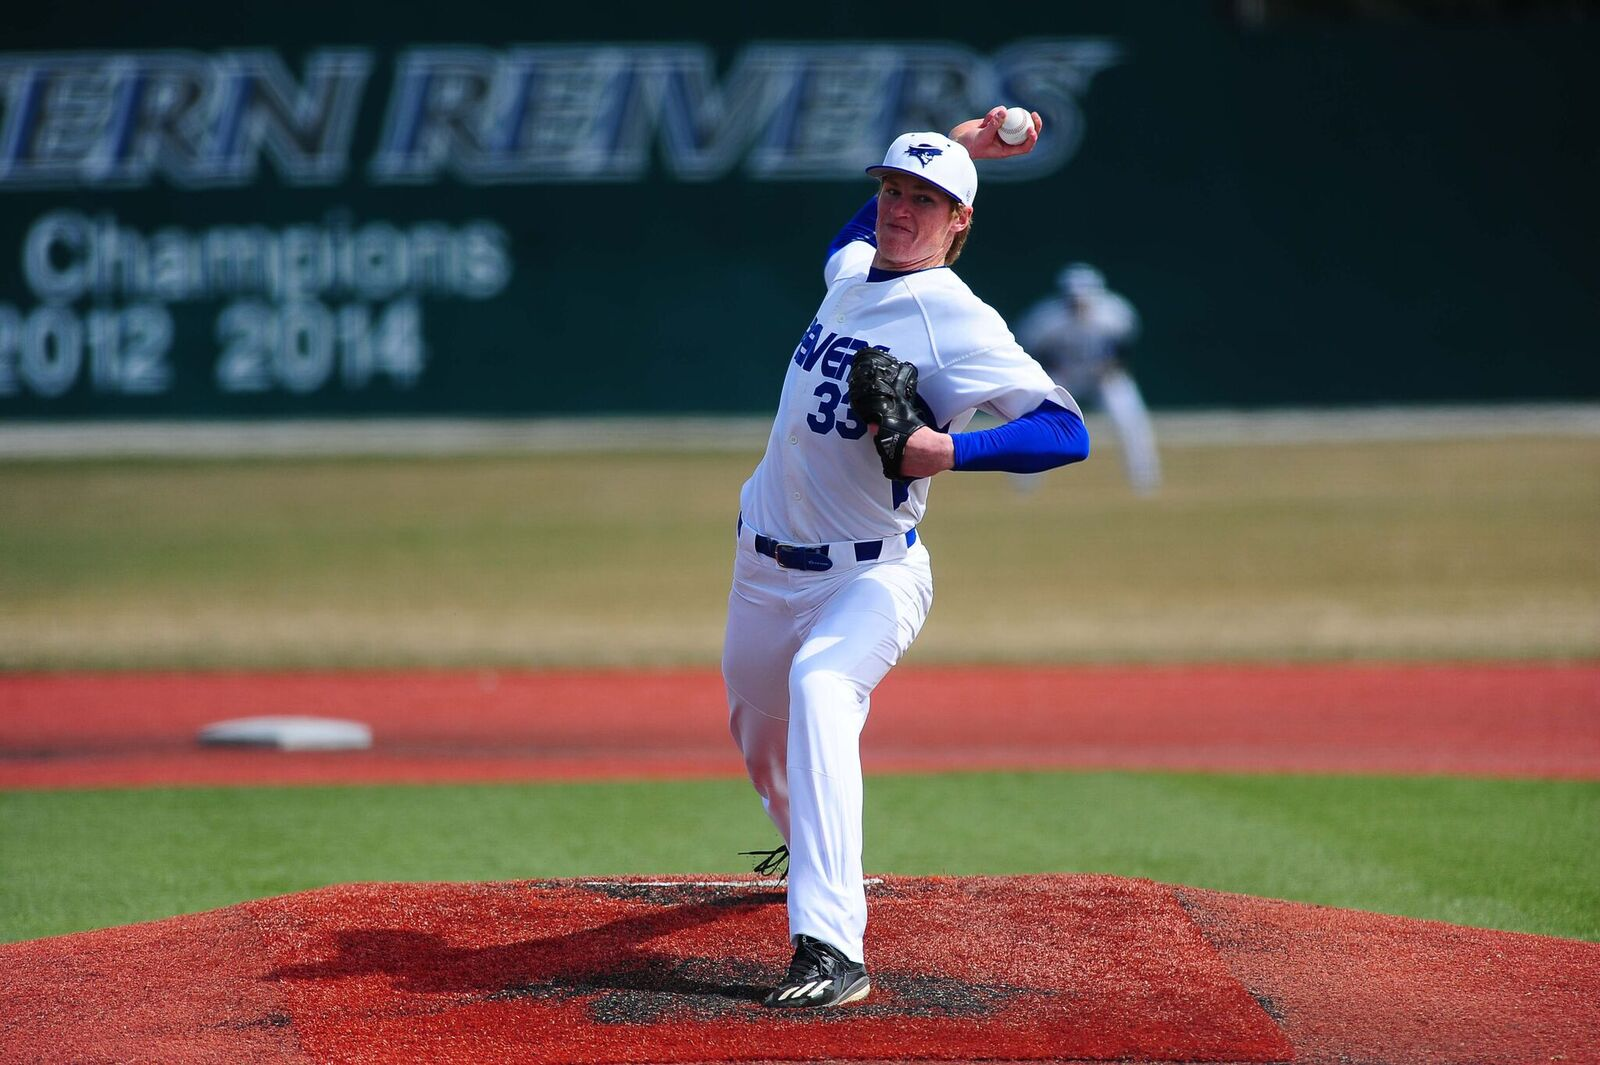 NJCAA D1 Baseball All-American list released, 3 Reivers among honorees